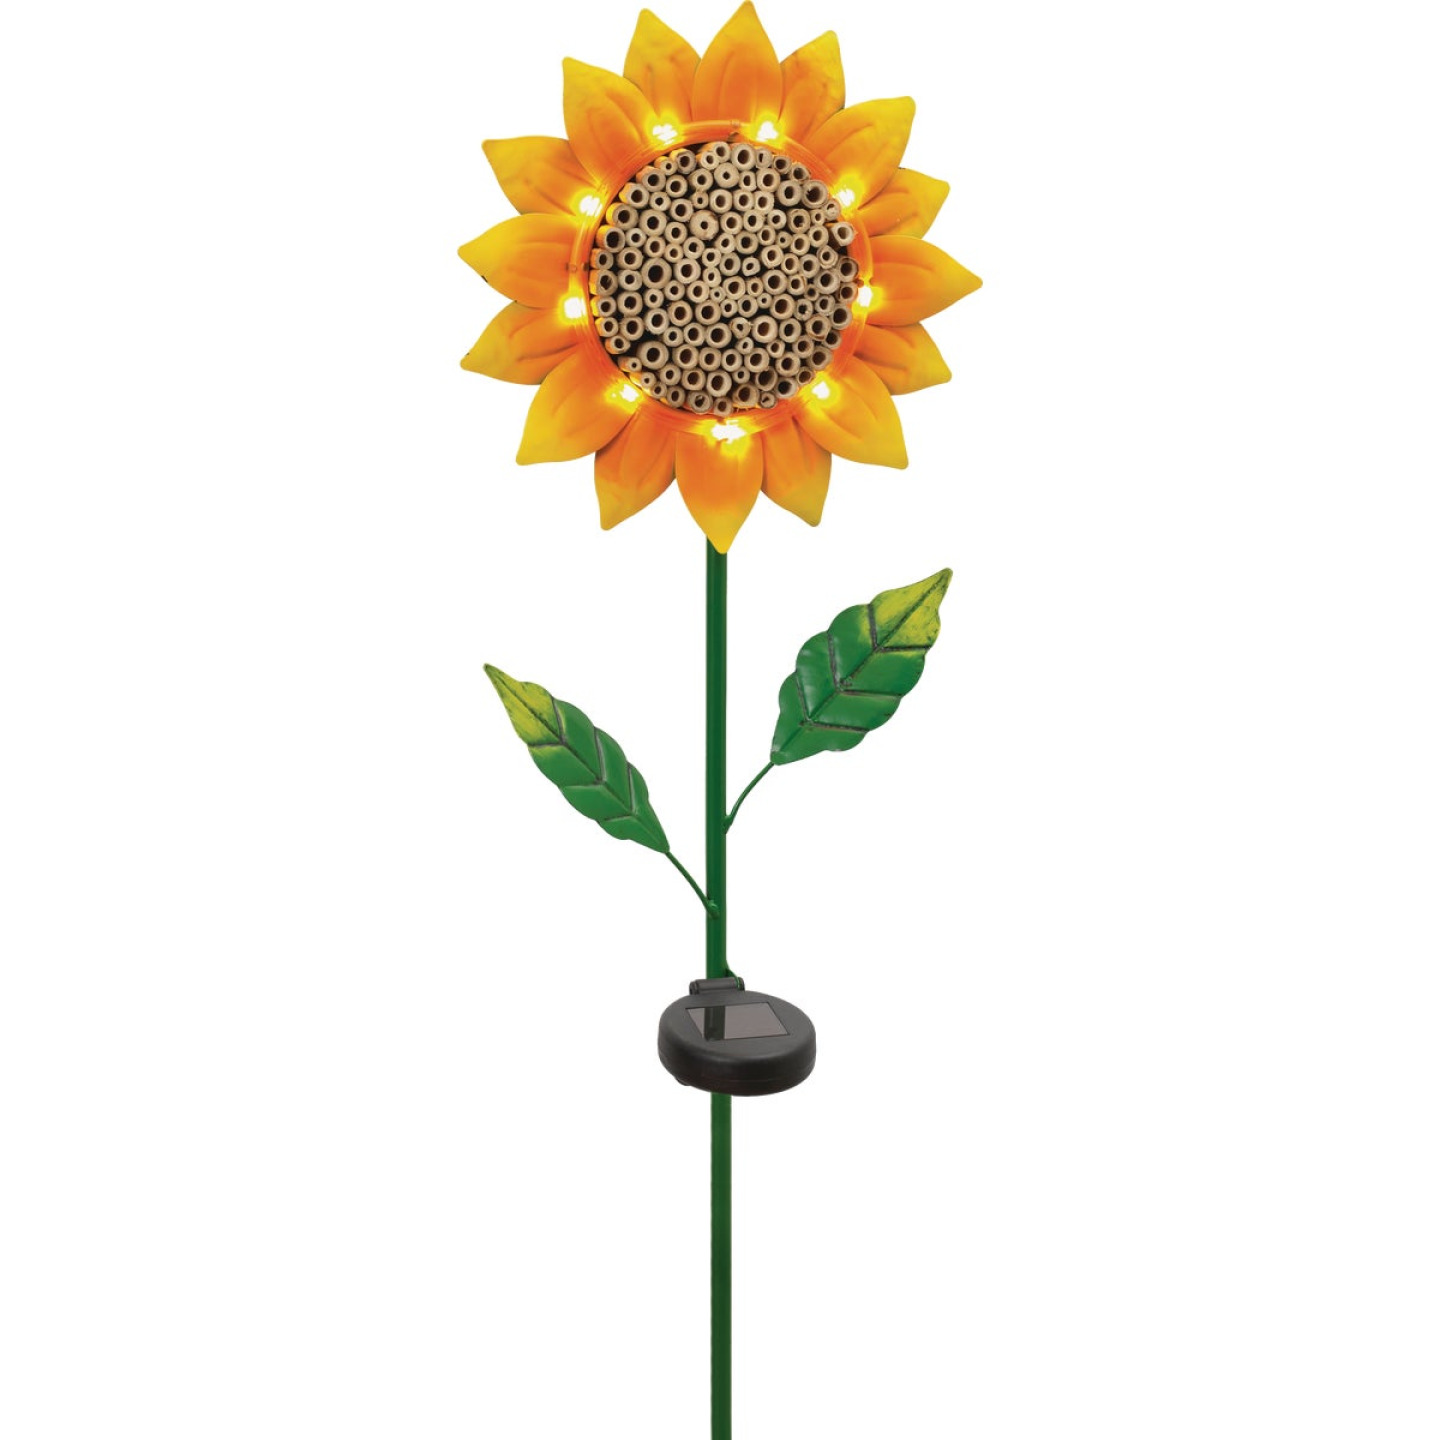 Mission Gallery Lighted Metal Sunflower Insect House 32 In. Solar Stake Light Image 1